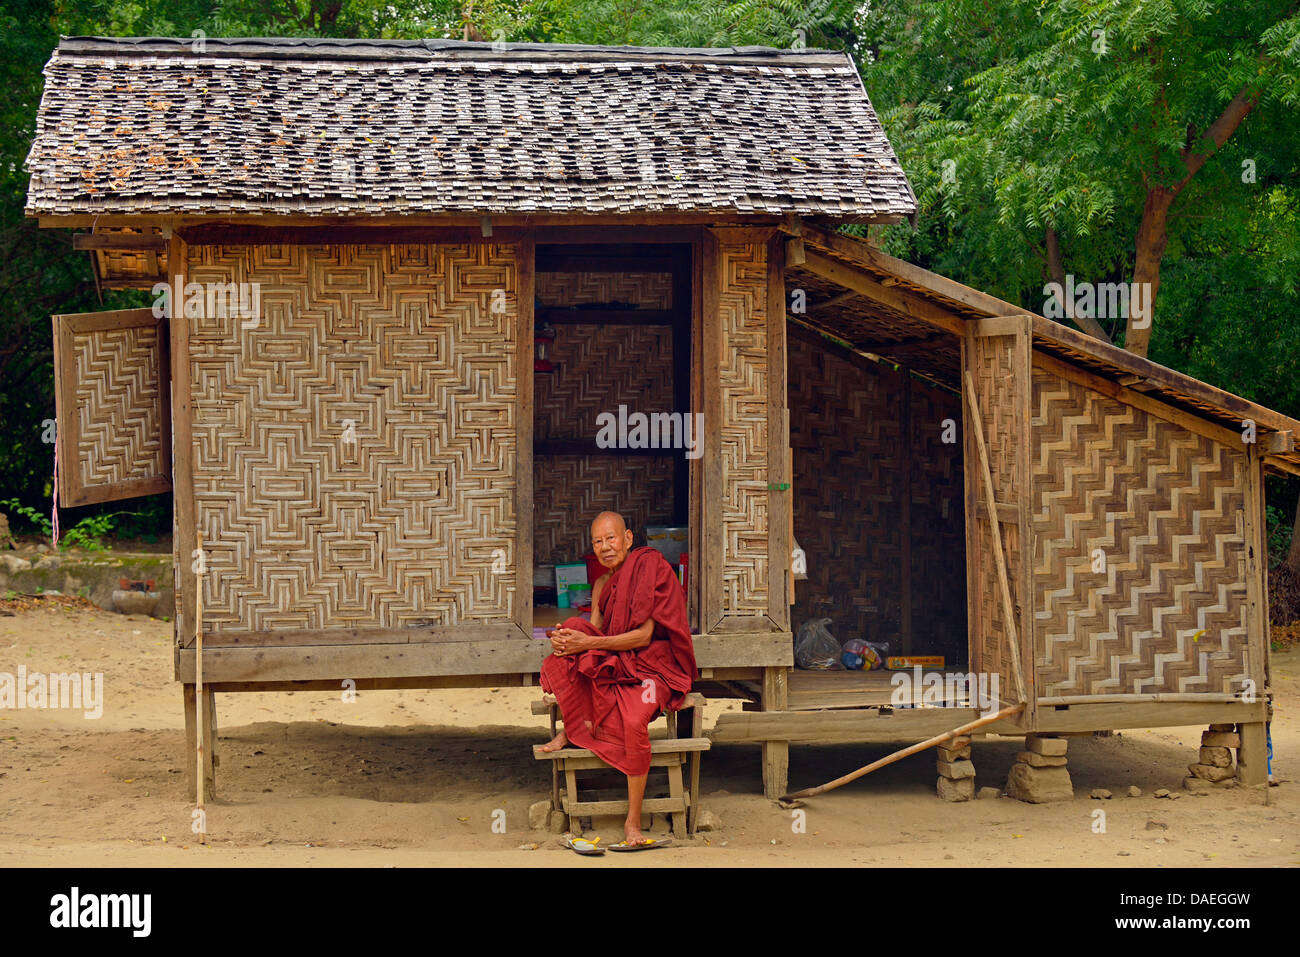 old monk on the stairs of his humble wooden house, Burma, Mandalay - Stock Image